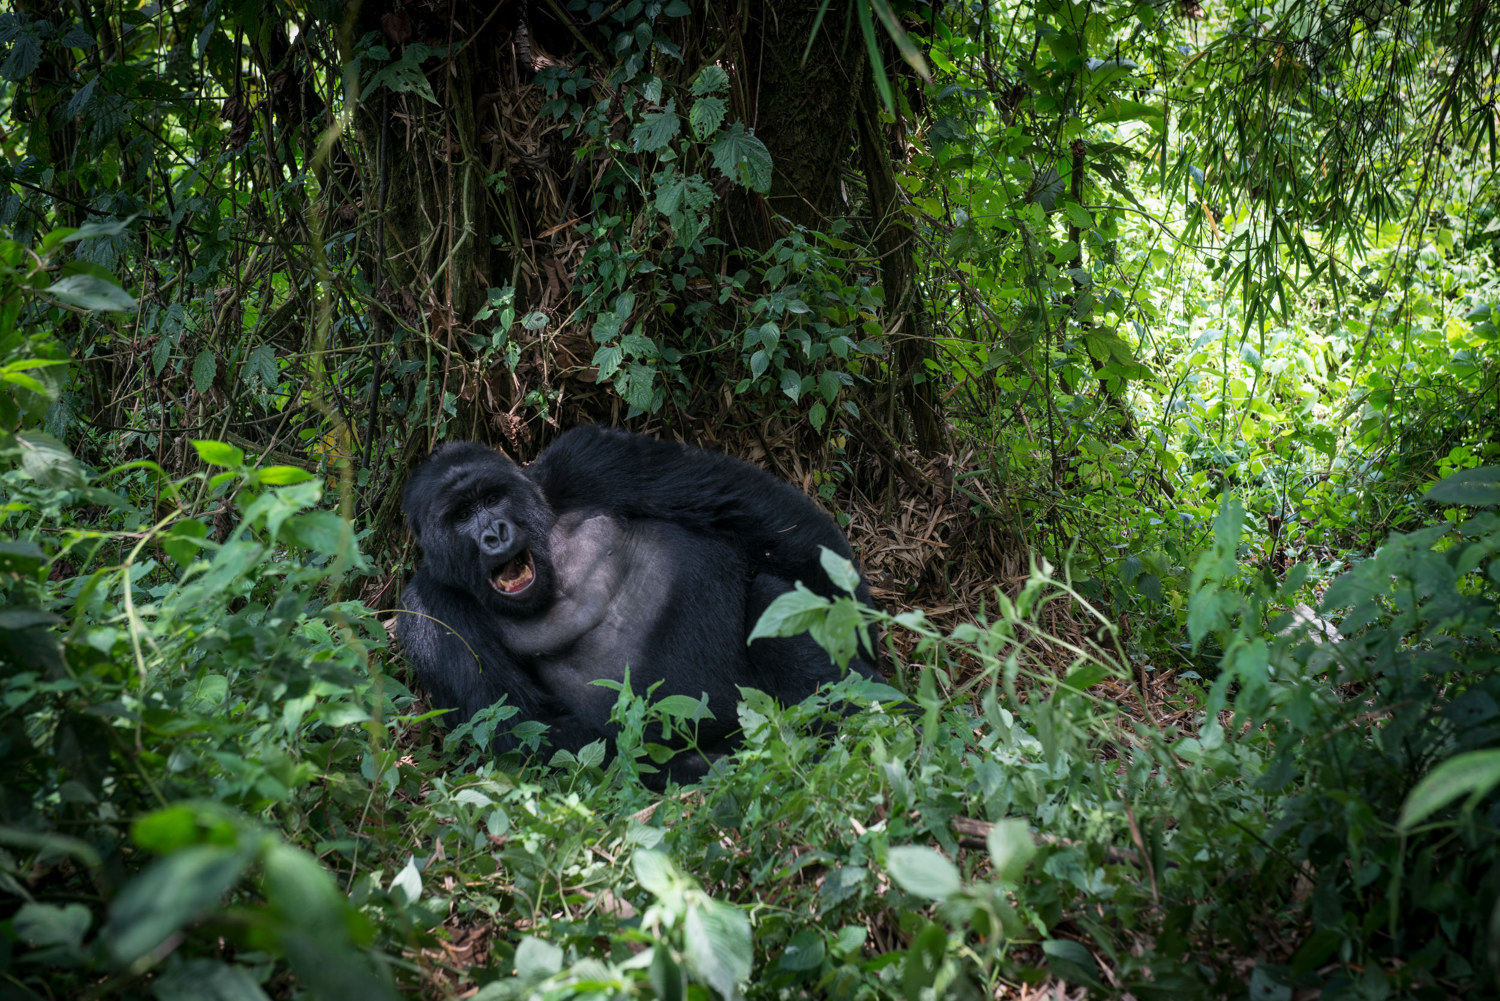 A silverback gorilla lounges below a tree in Virunga's National Park.